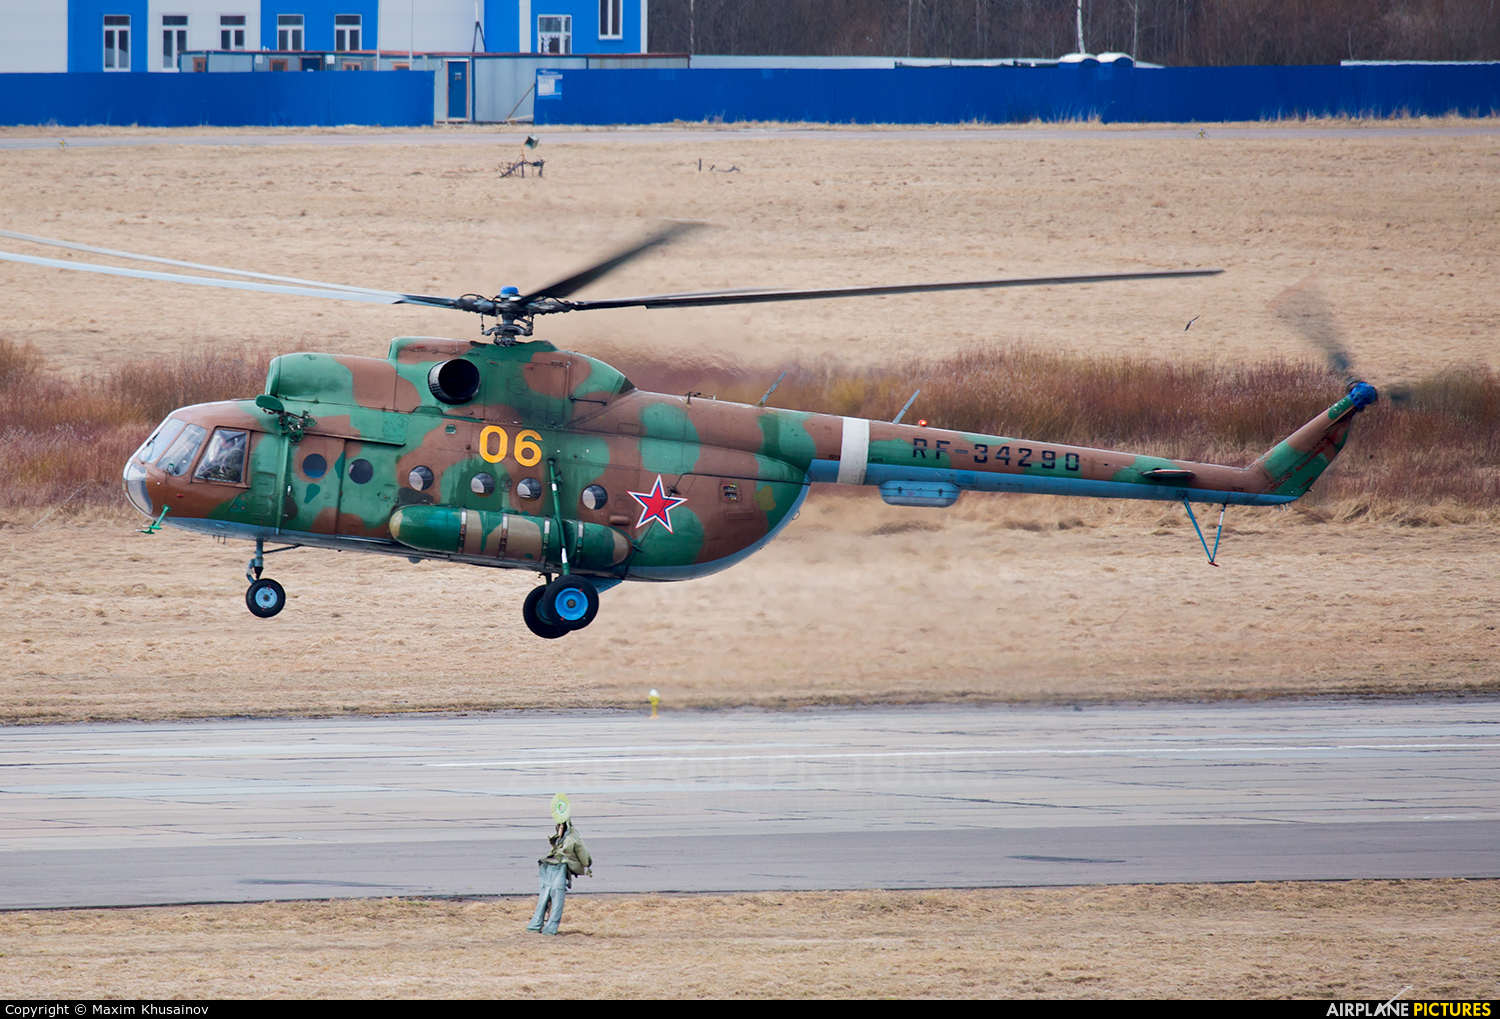 Russia - Ministry of Internal Affairs RF-34290 aircraft at Undisclosed Location